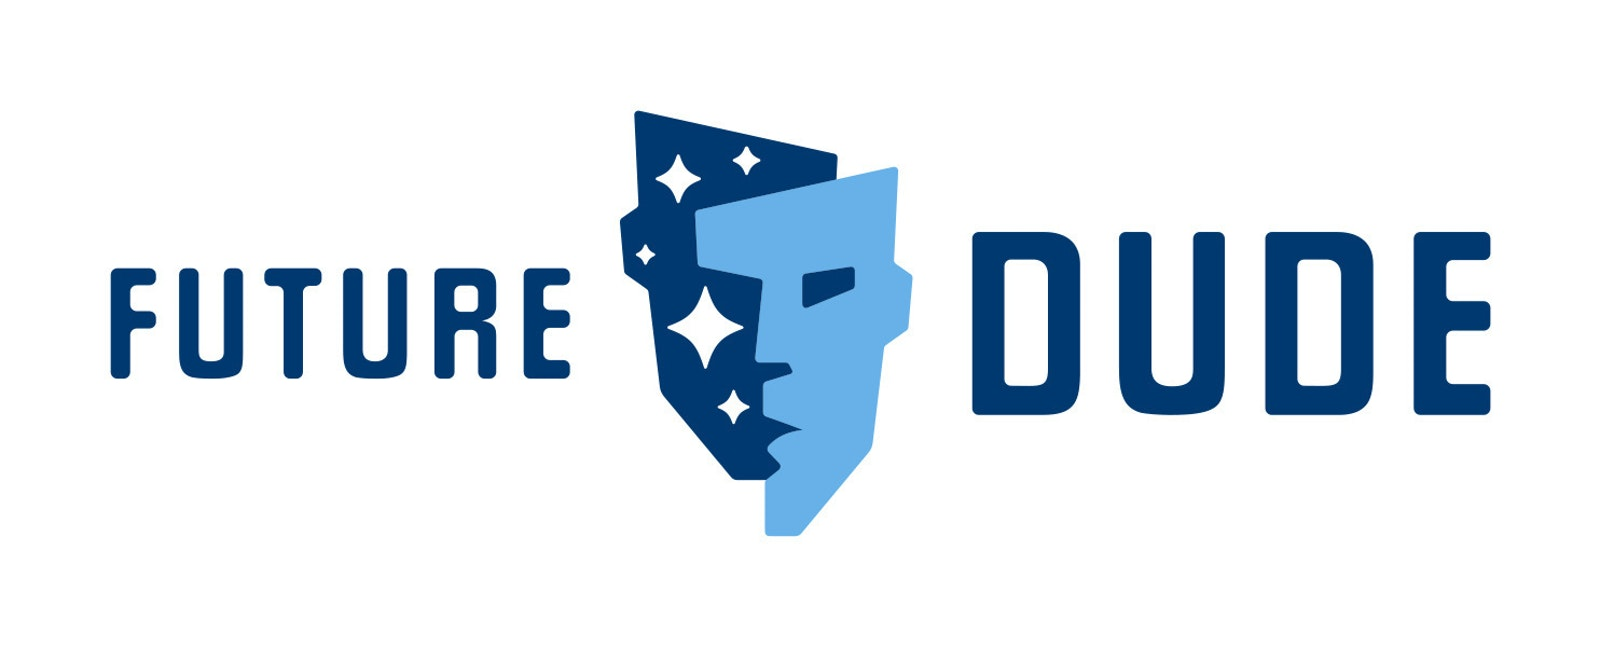 Future Dude logo